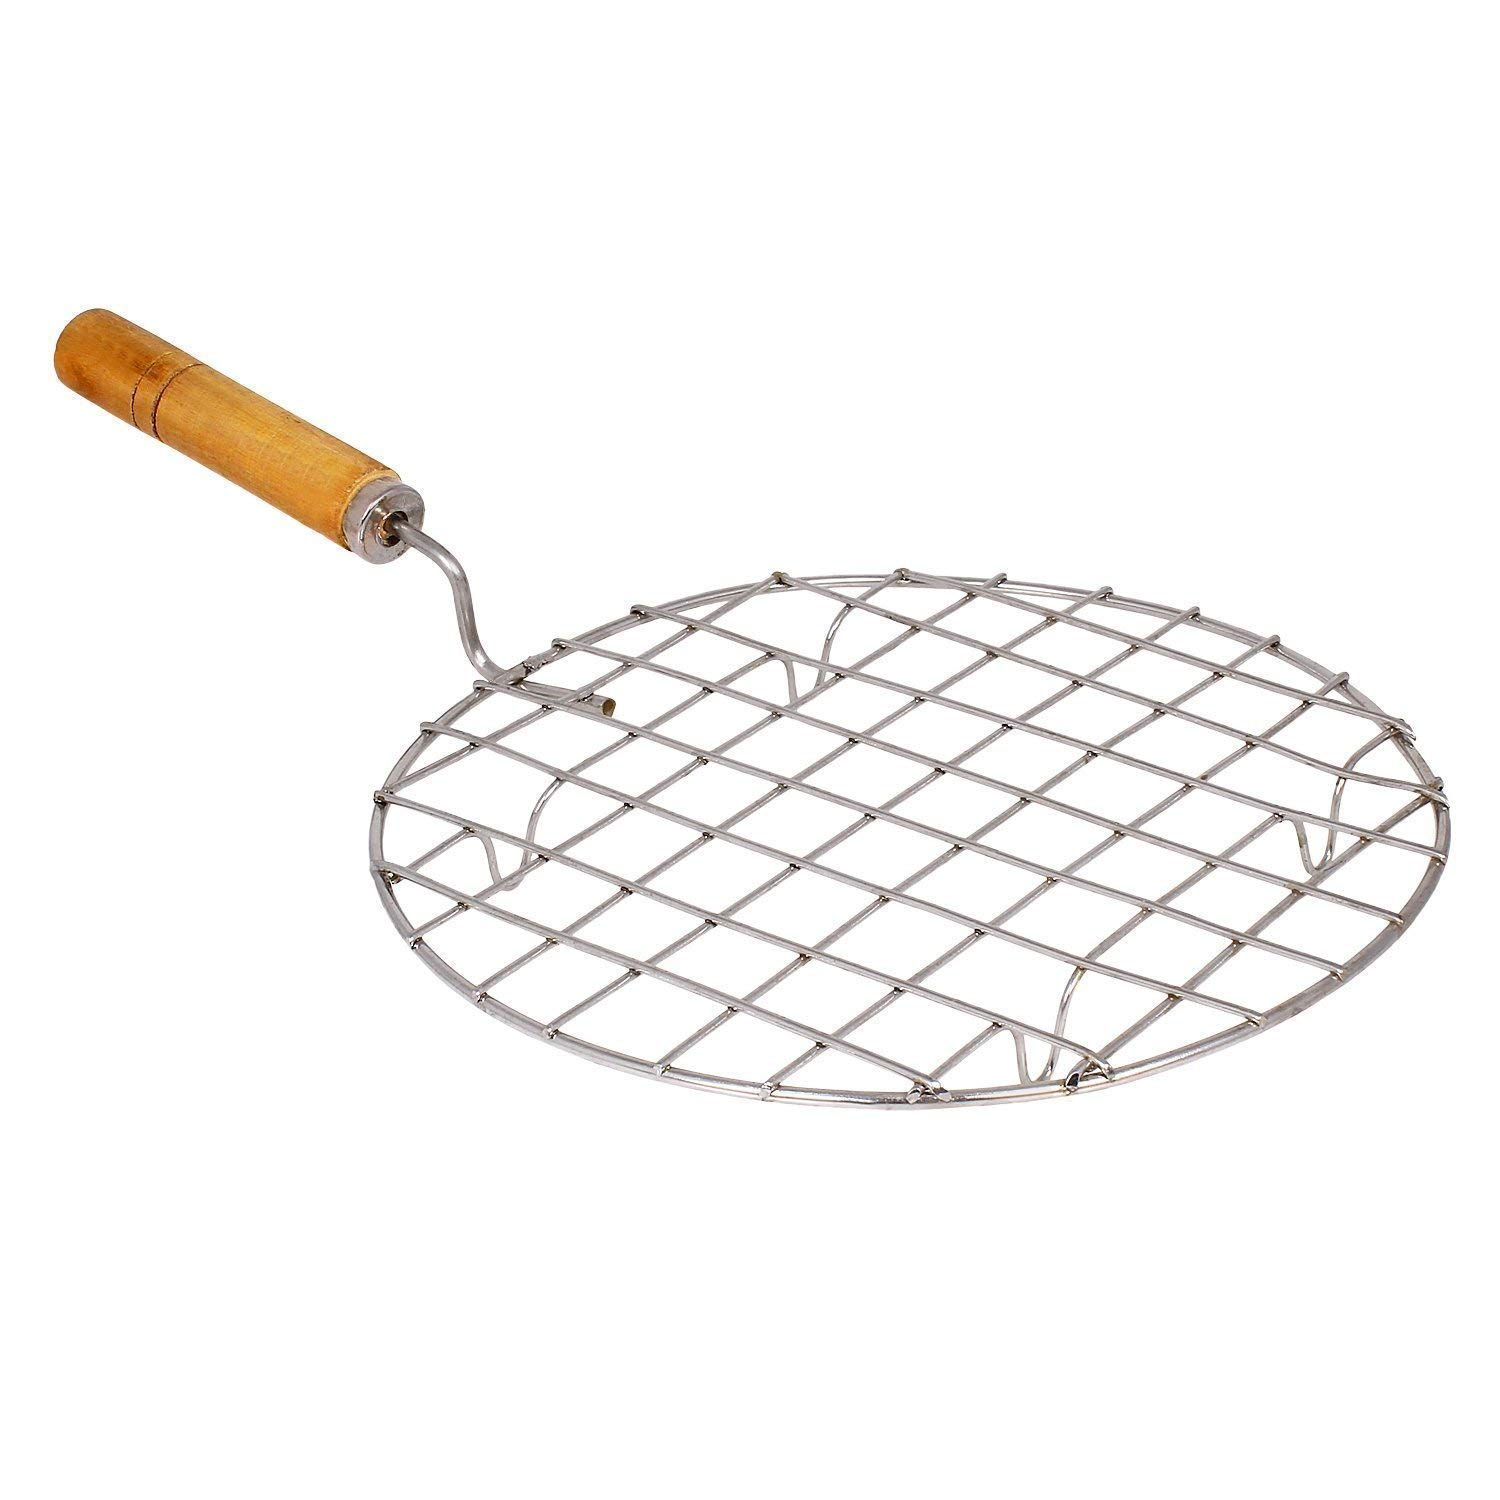 Stainless Steel Round 17 Cm Jali Roaster Wooden Round Roasting Net,Stainless Steel Wire Roaster,Wooden Handle Round with Roasting Net,Papad Jali,Roti Jali,Roaster